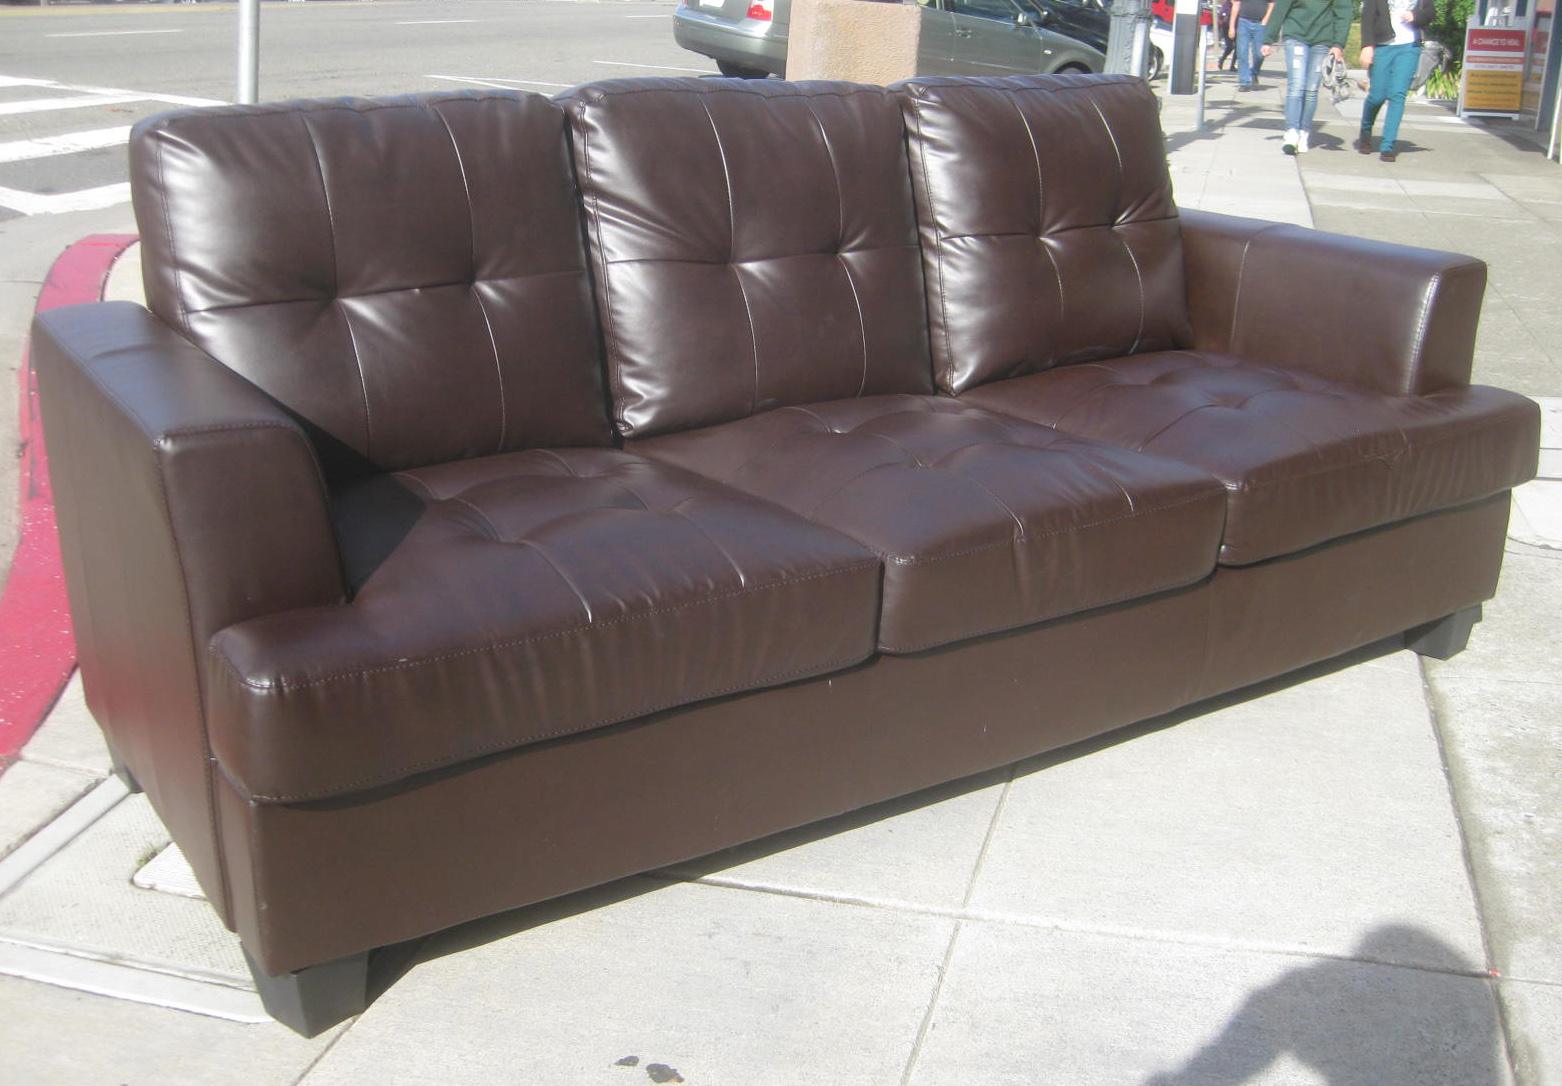 the pleather plough photos of leather couch faux ideas special sofa gallery at cadsden